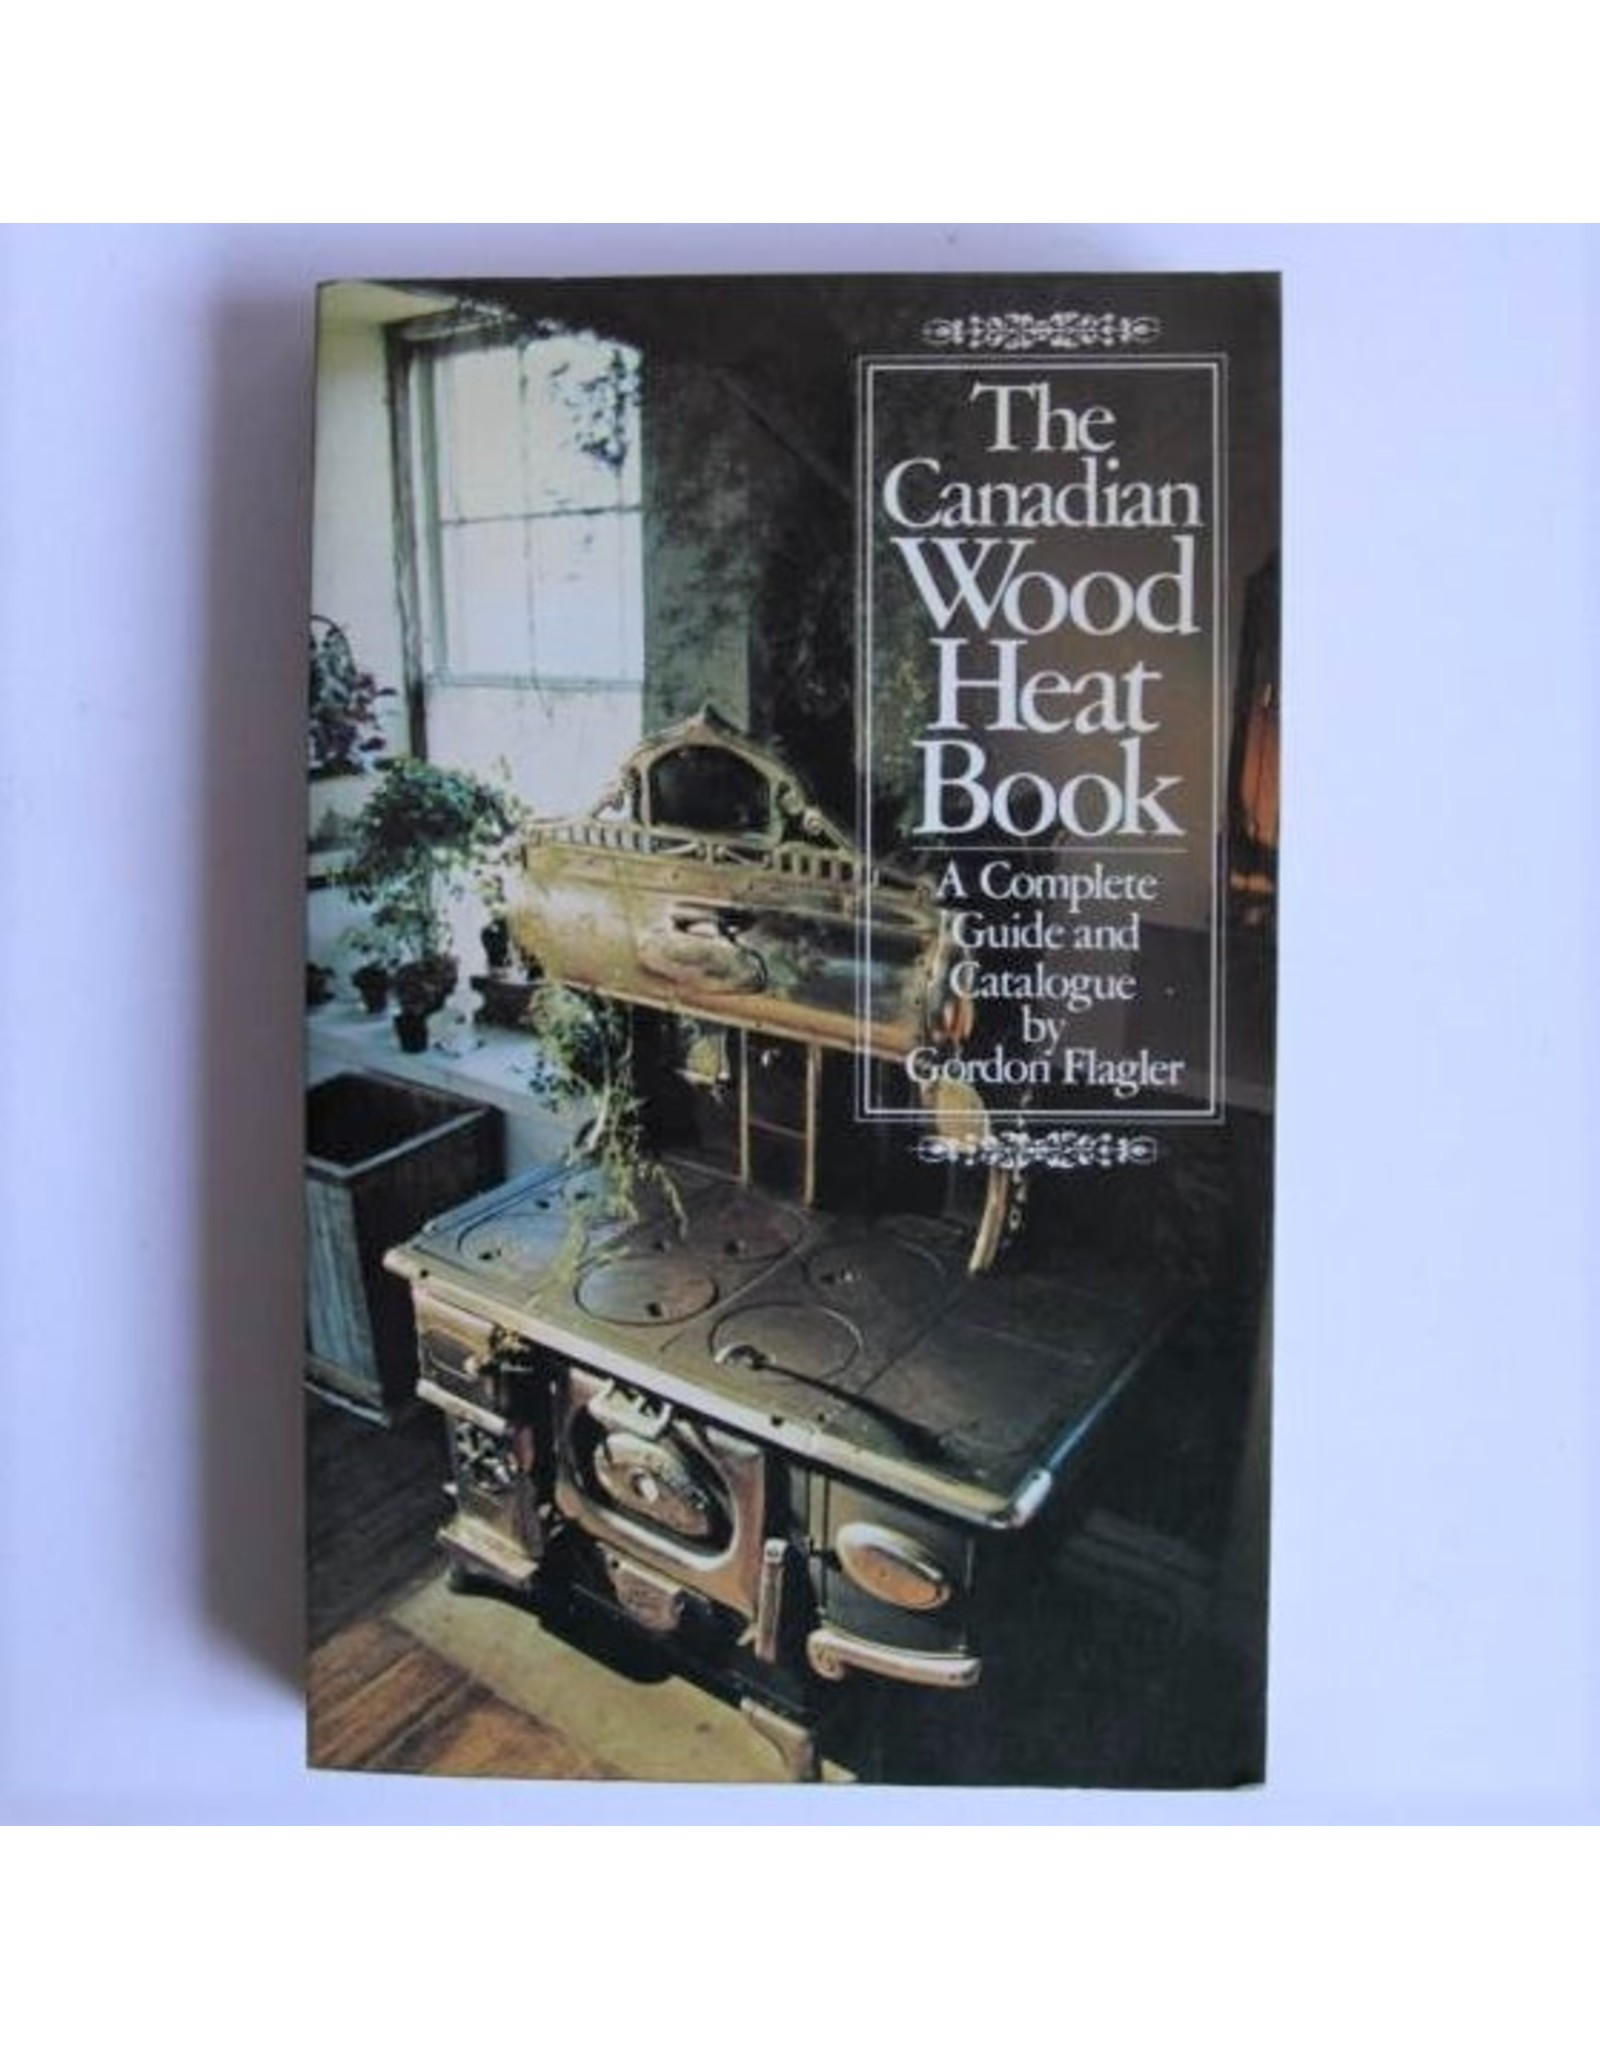 Softcover book - The Canadian Wood Heat Book